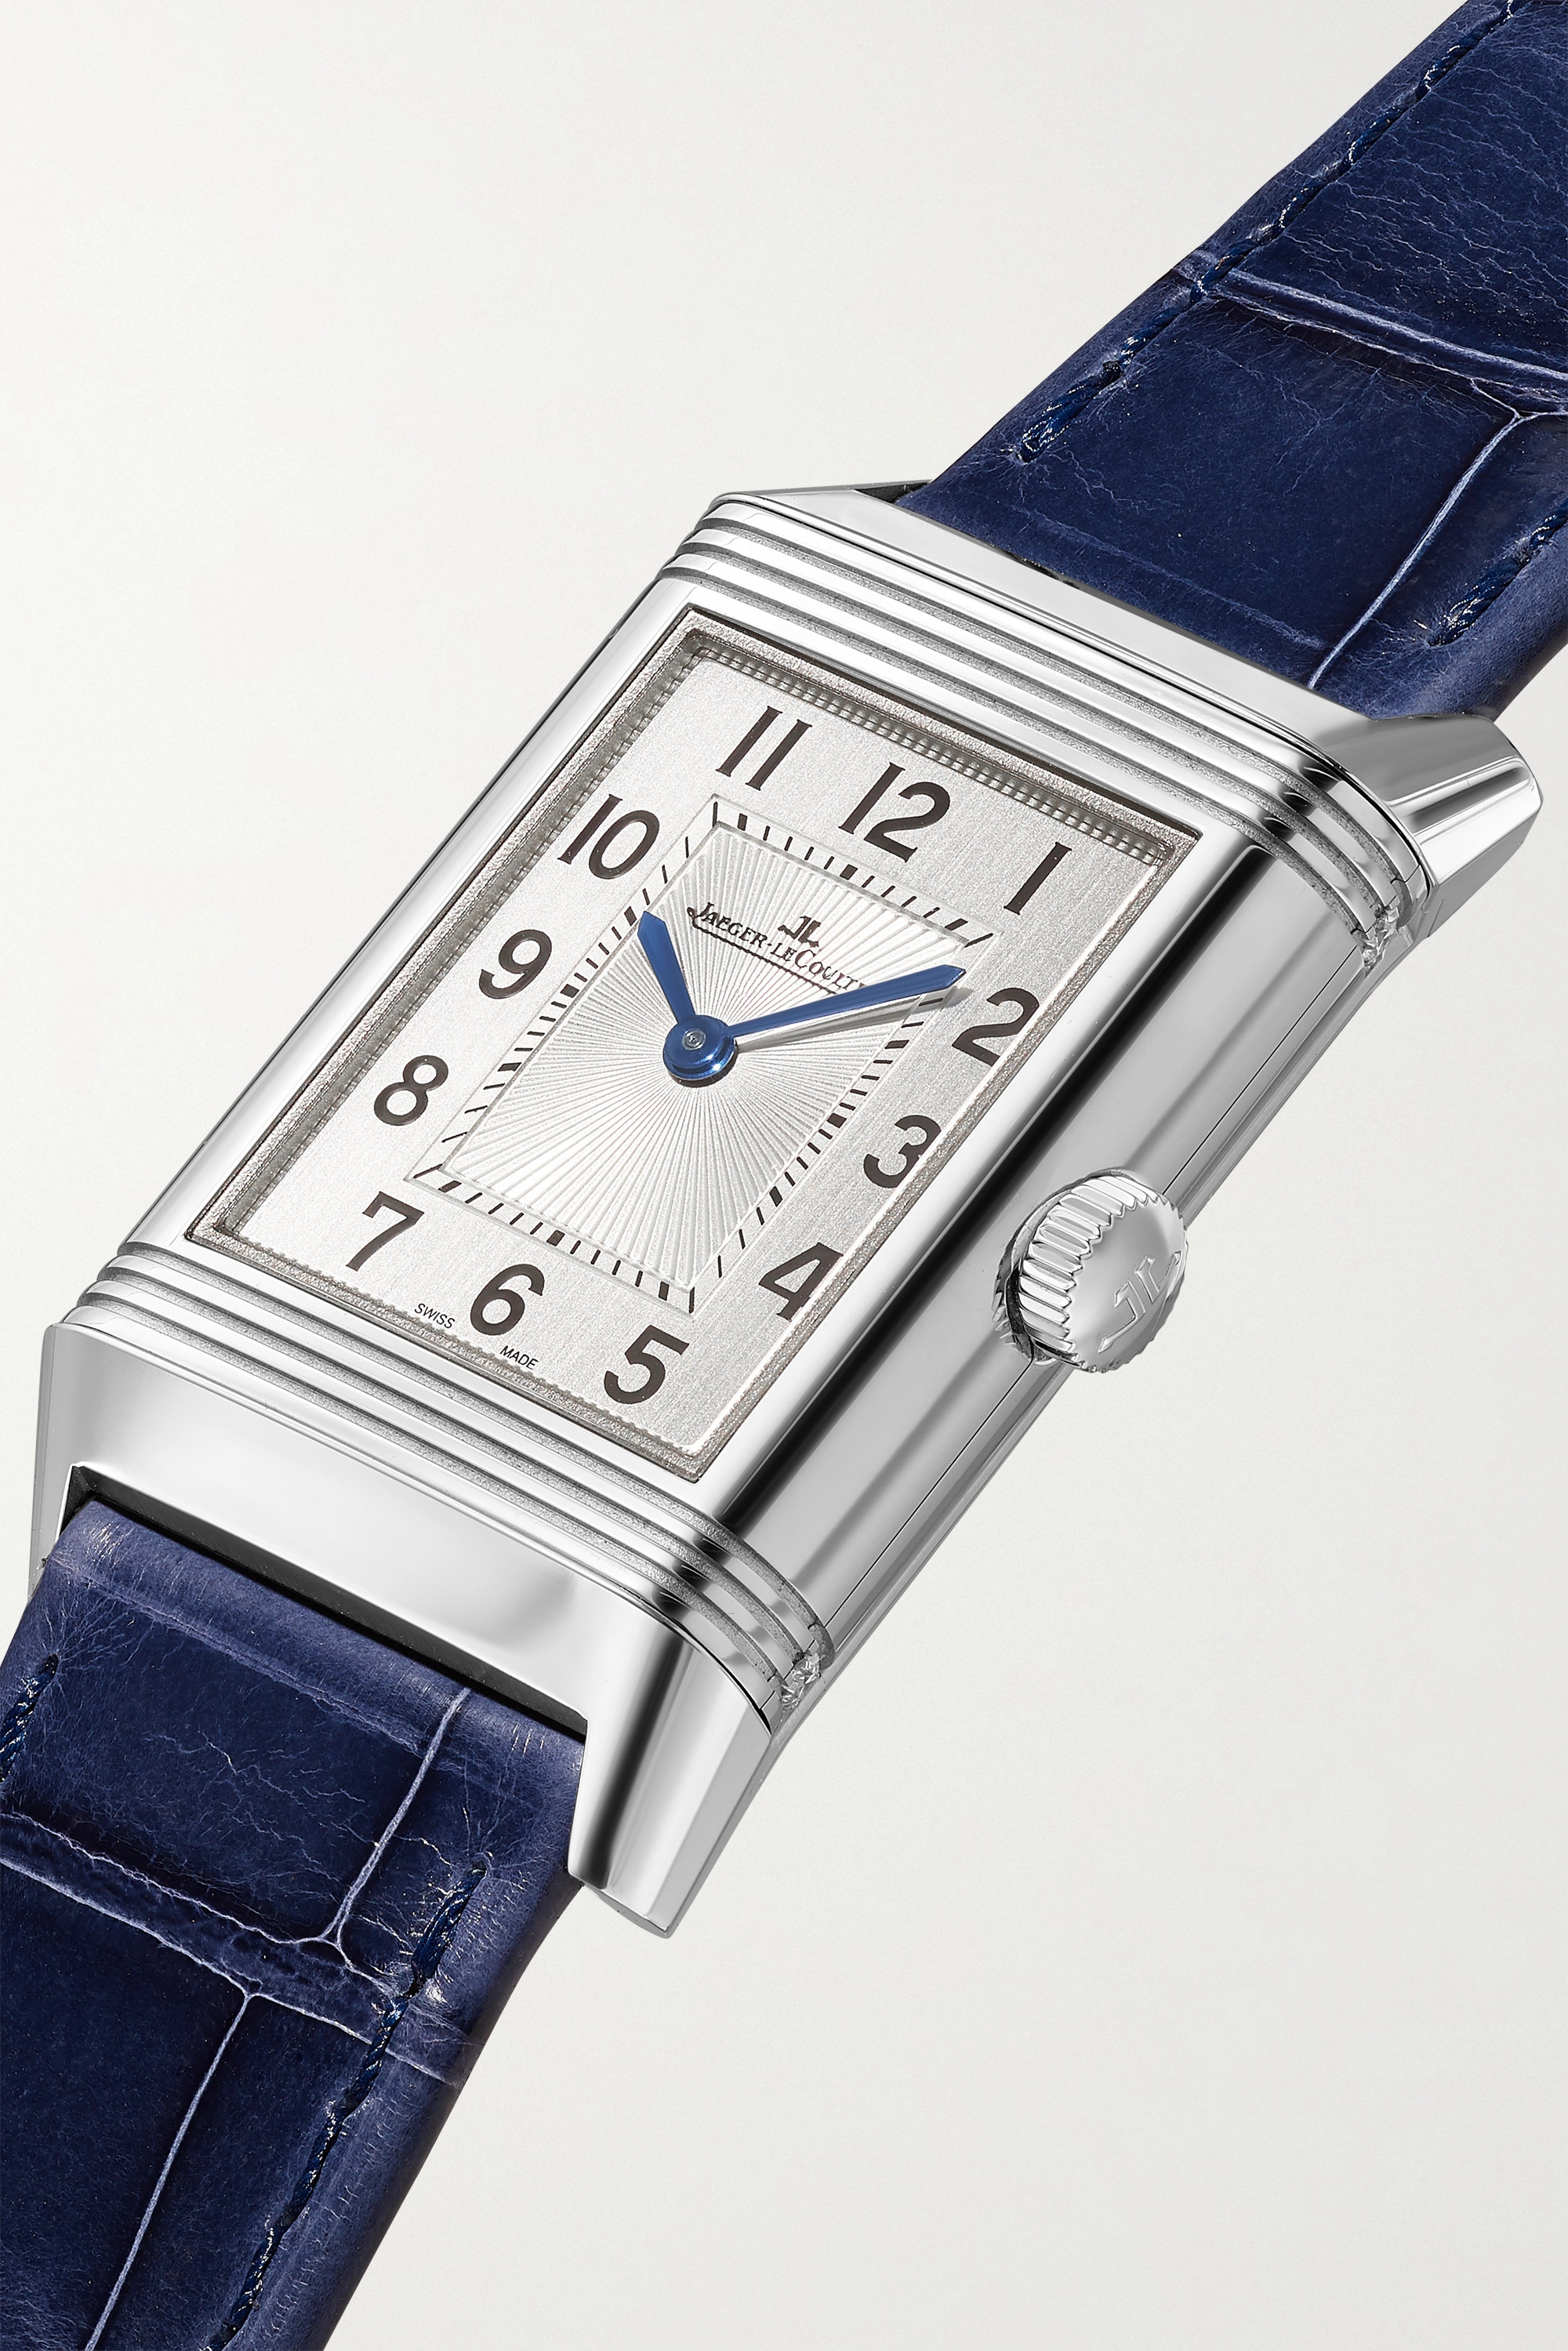 Jaeger-LeCoultre Reverso Classic Duetto Hand-Wound 24mm medium stainless steel, alligator and diamond watch